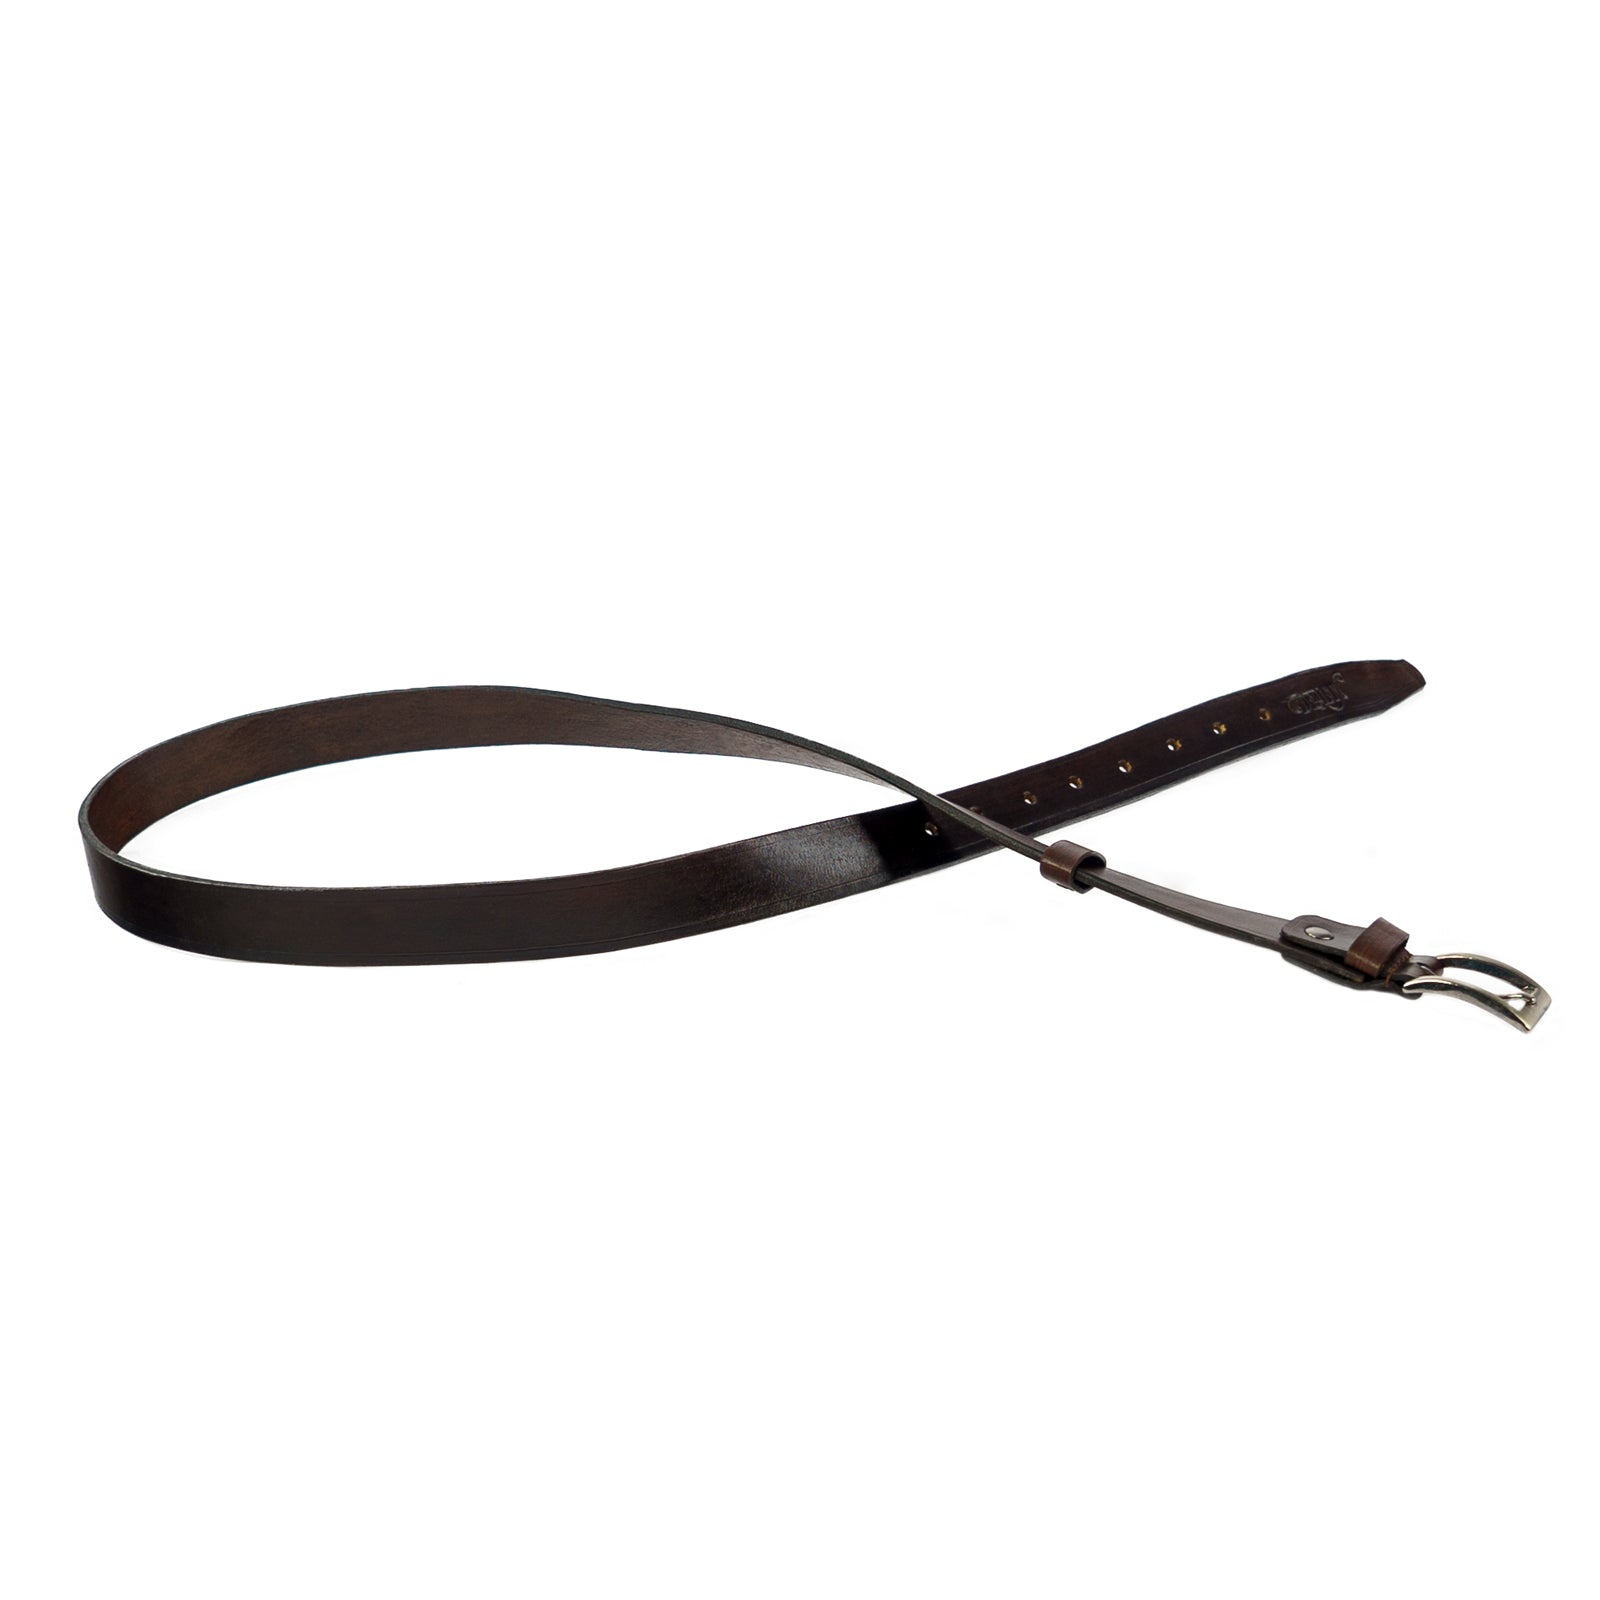 Derifix Vaquero Men's Handmade Leather Belt